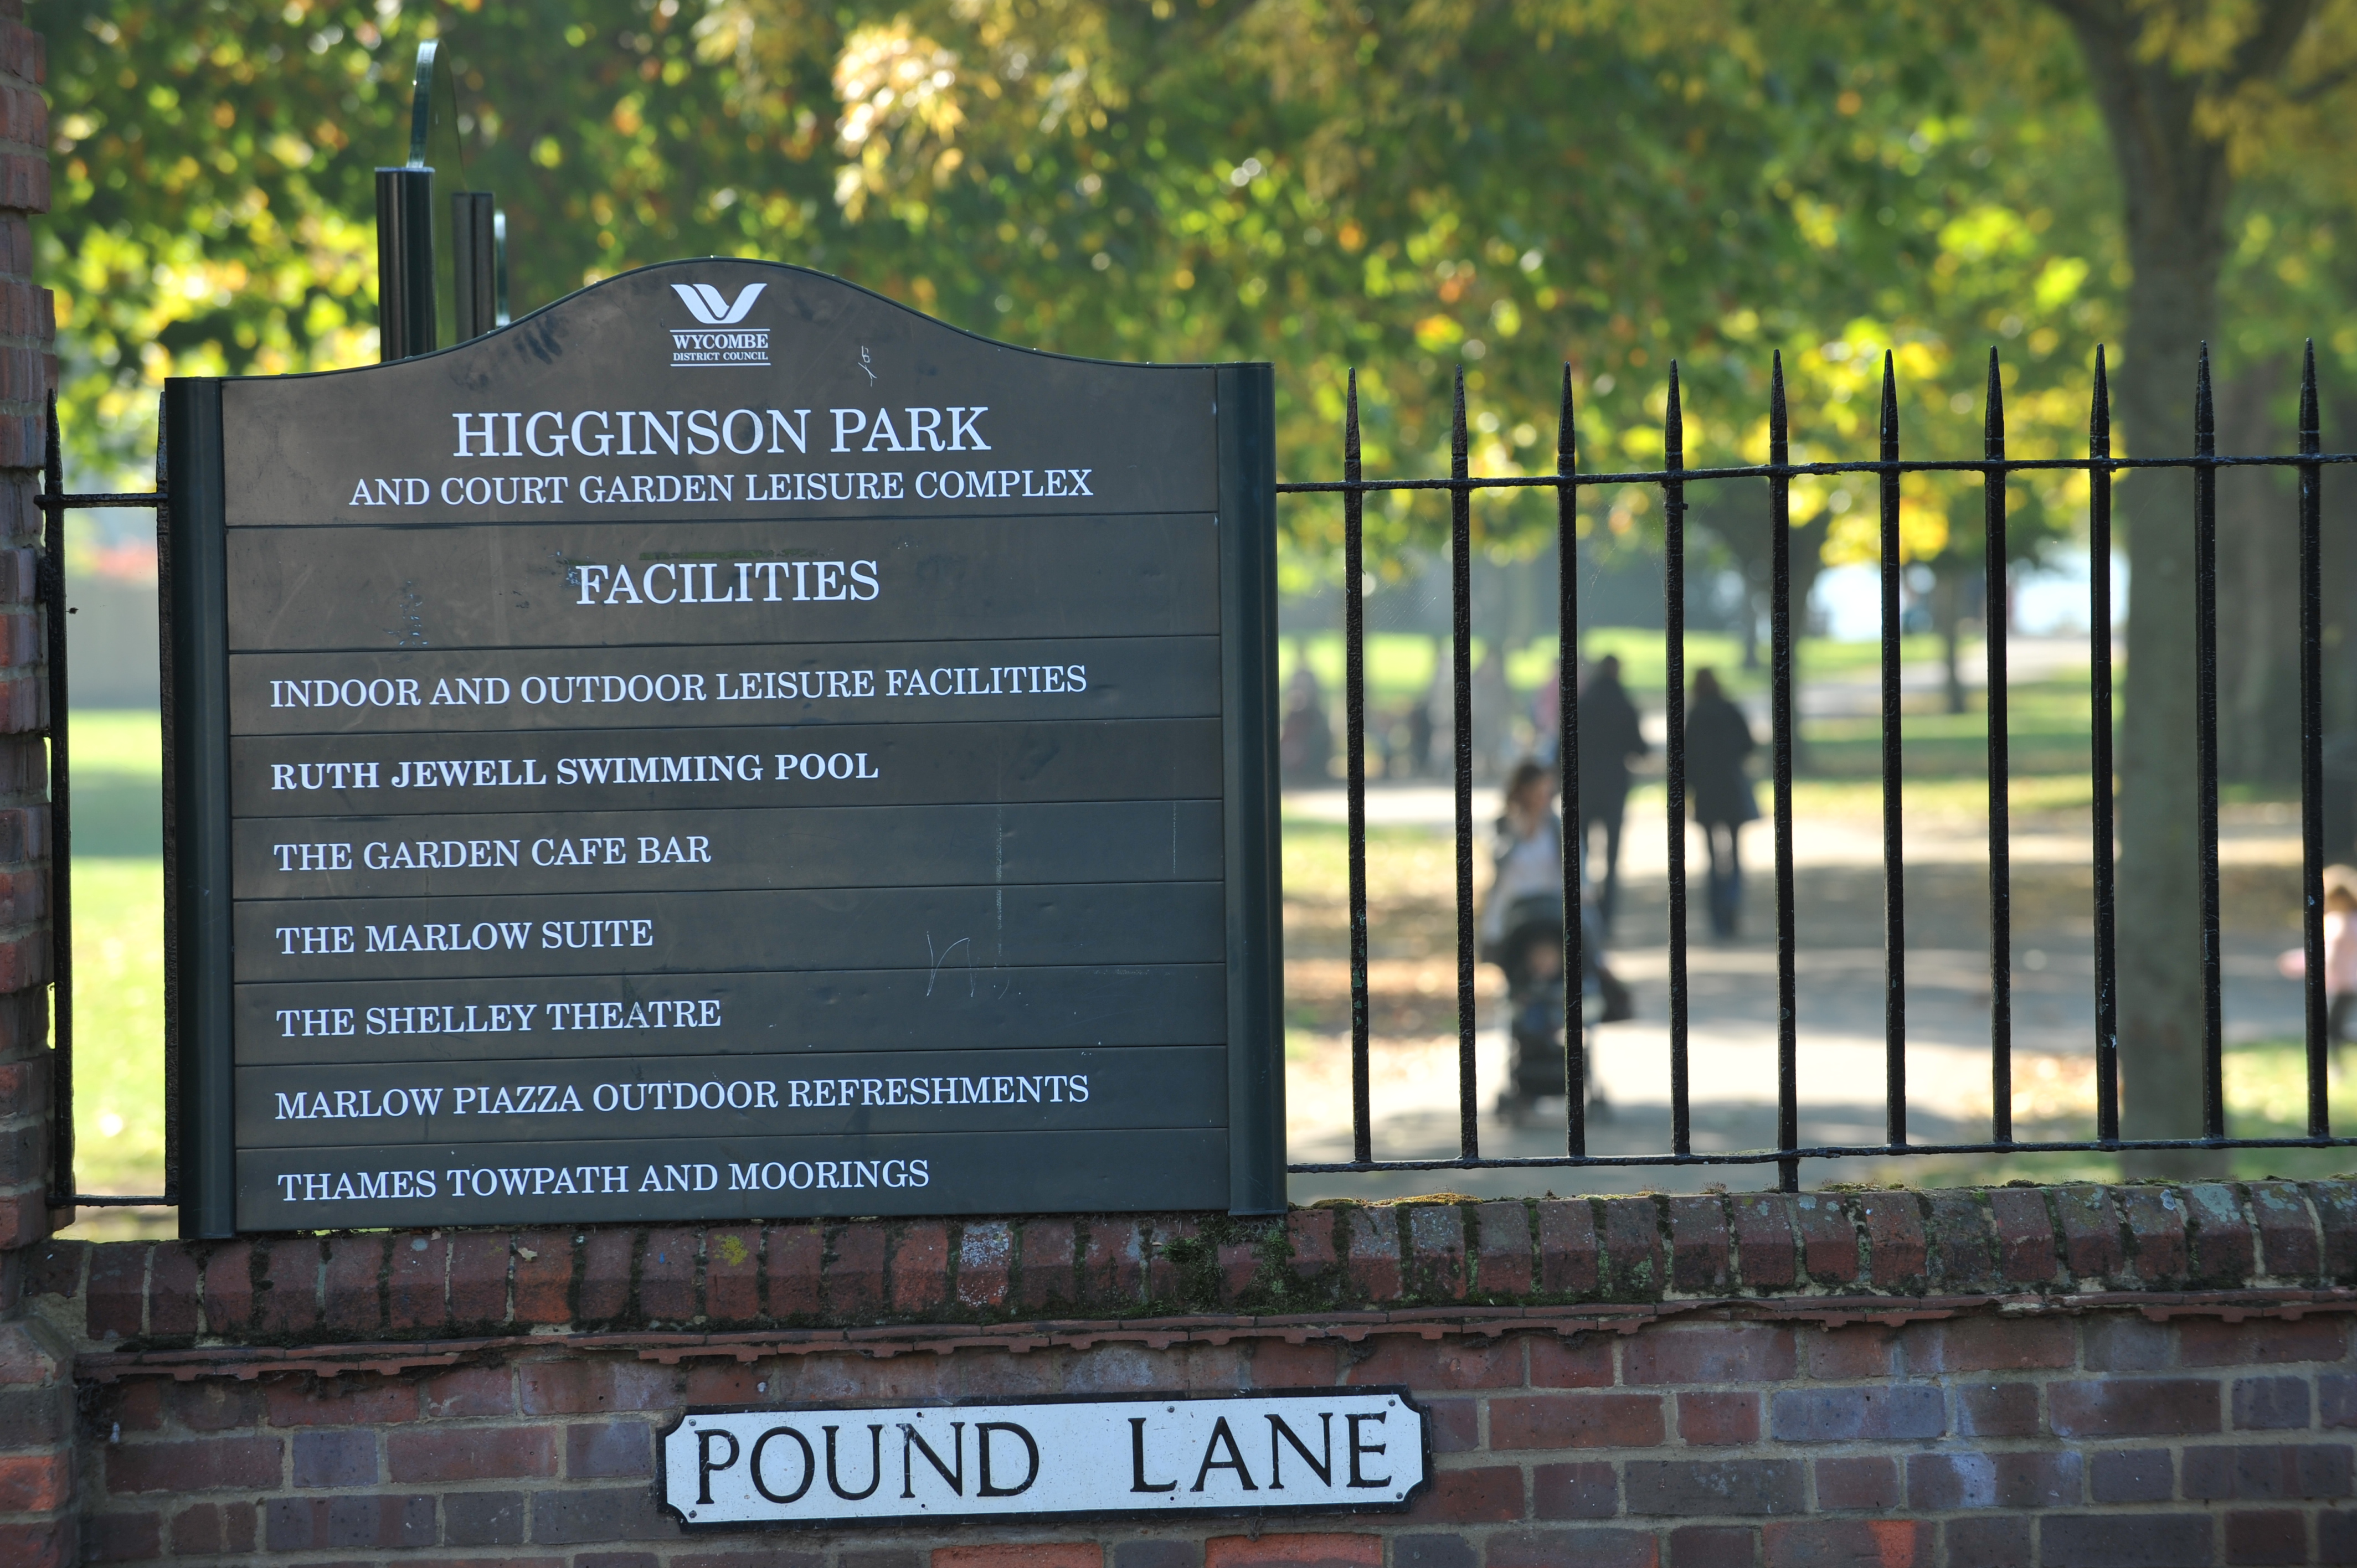 Higginson Park and Court Garden entrance sign